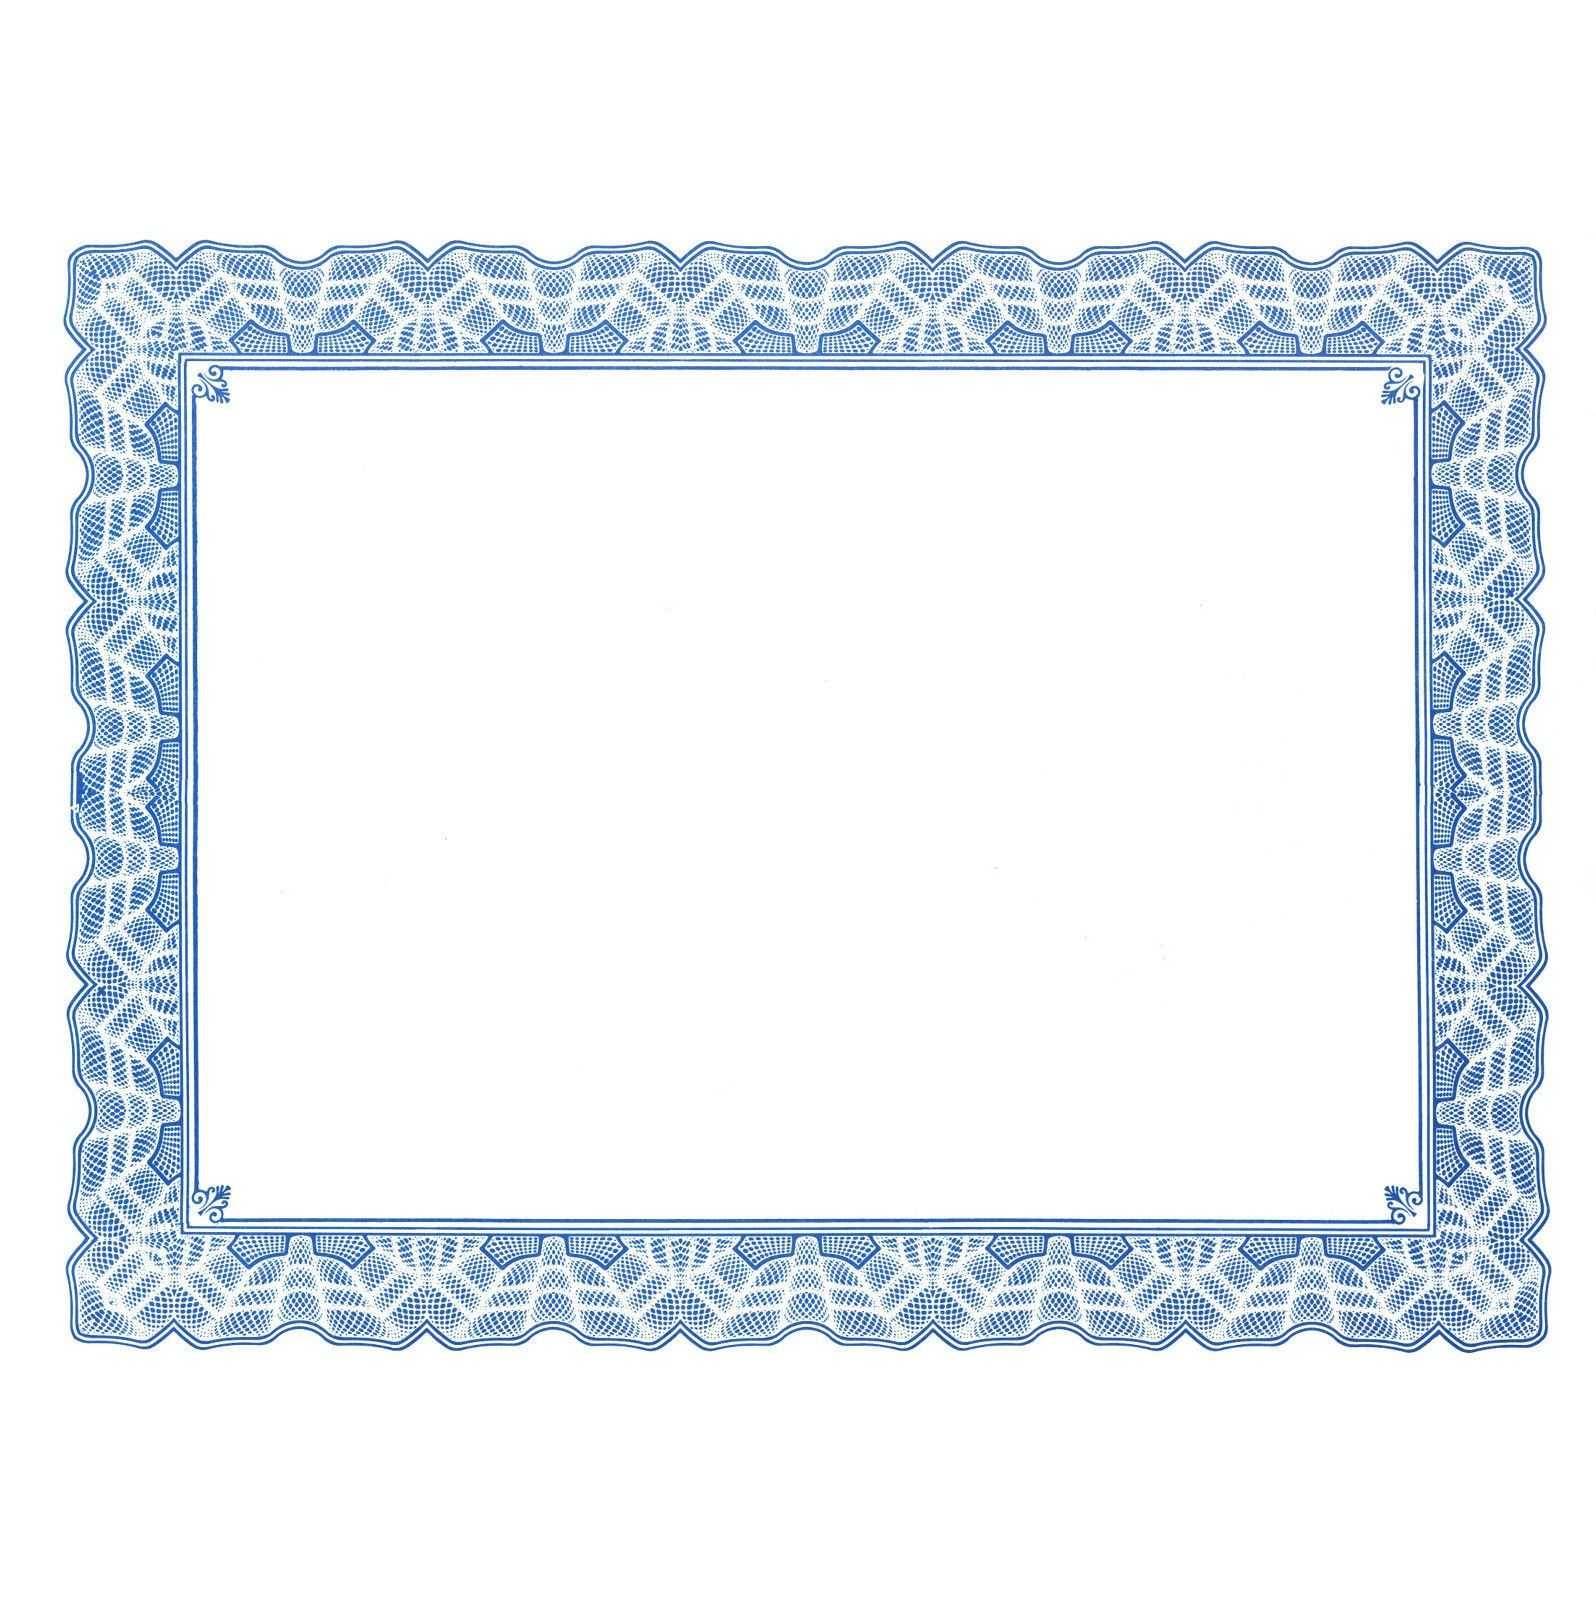 Free Certificate Border Templates For Word for Word Border Templates Free Download